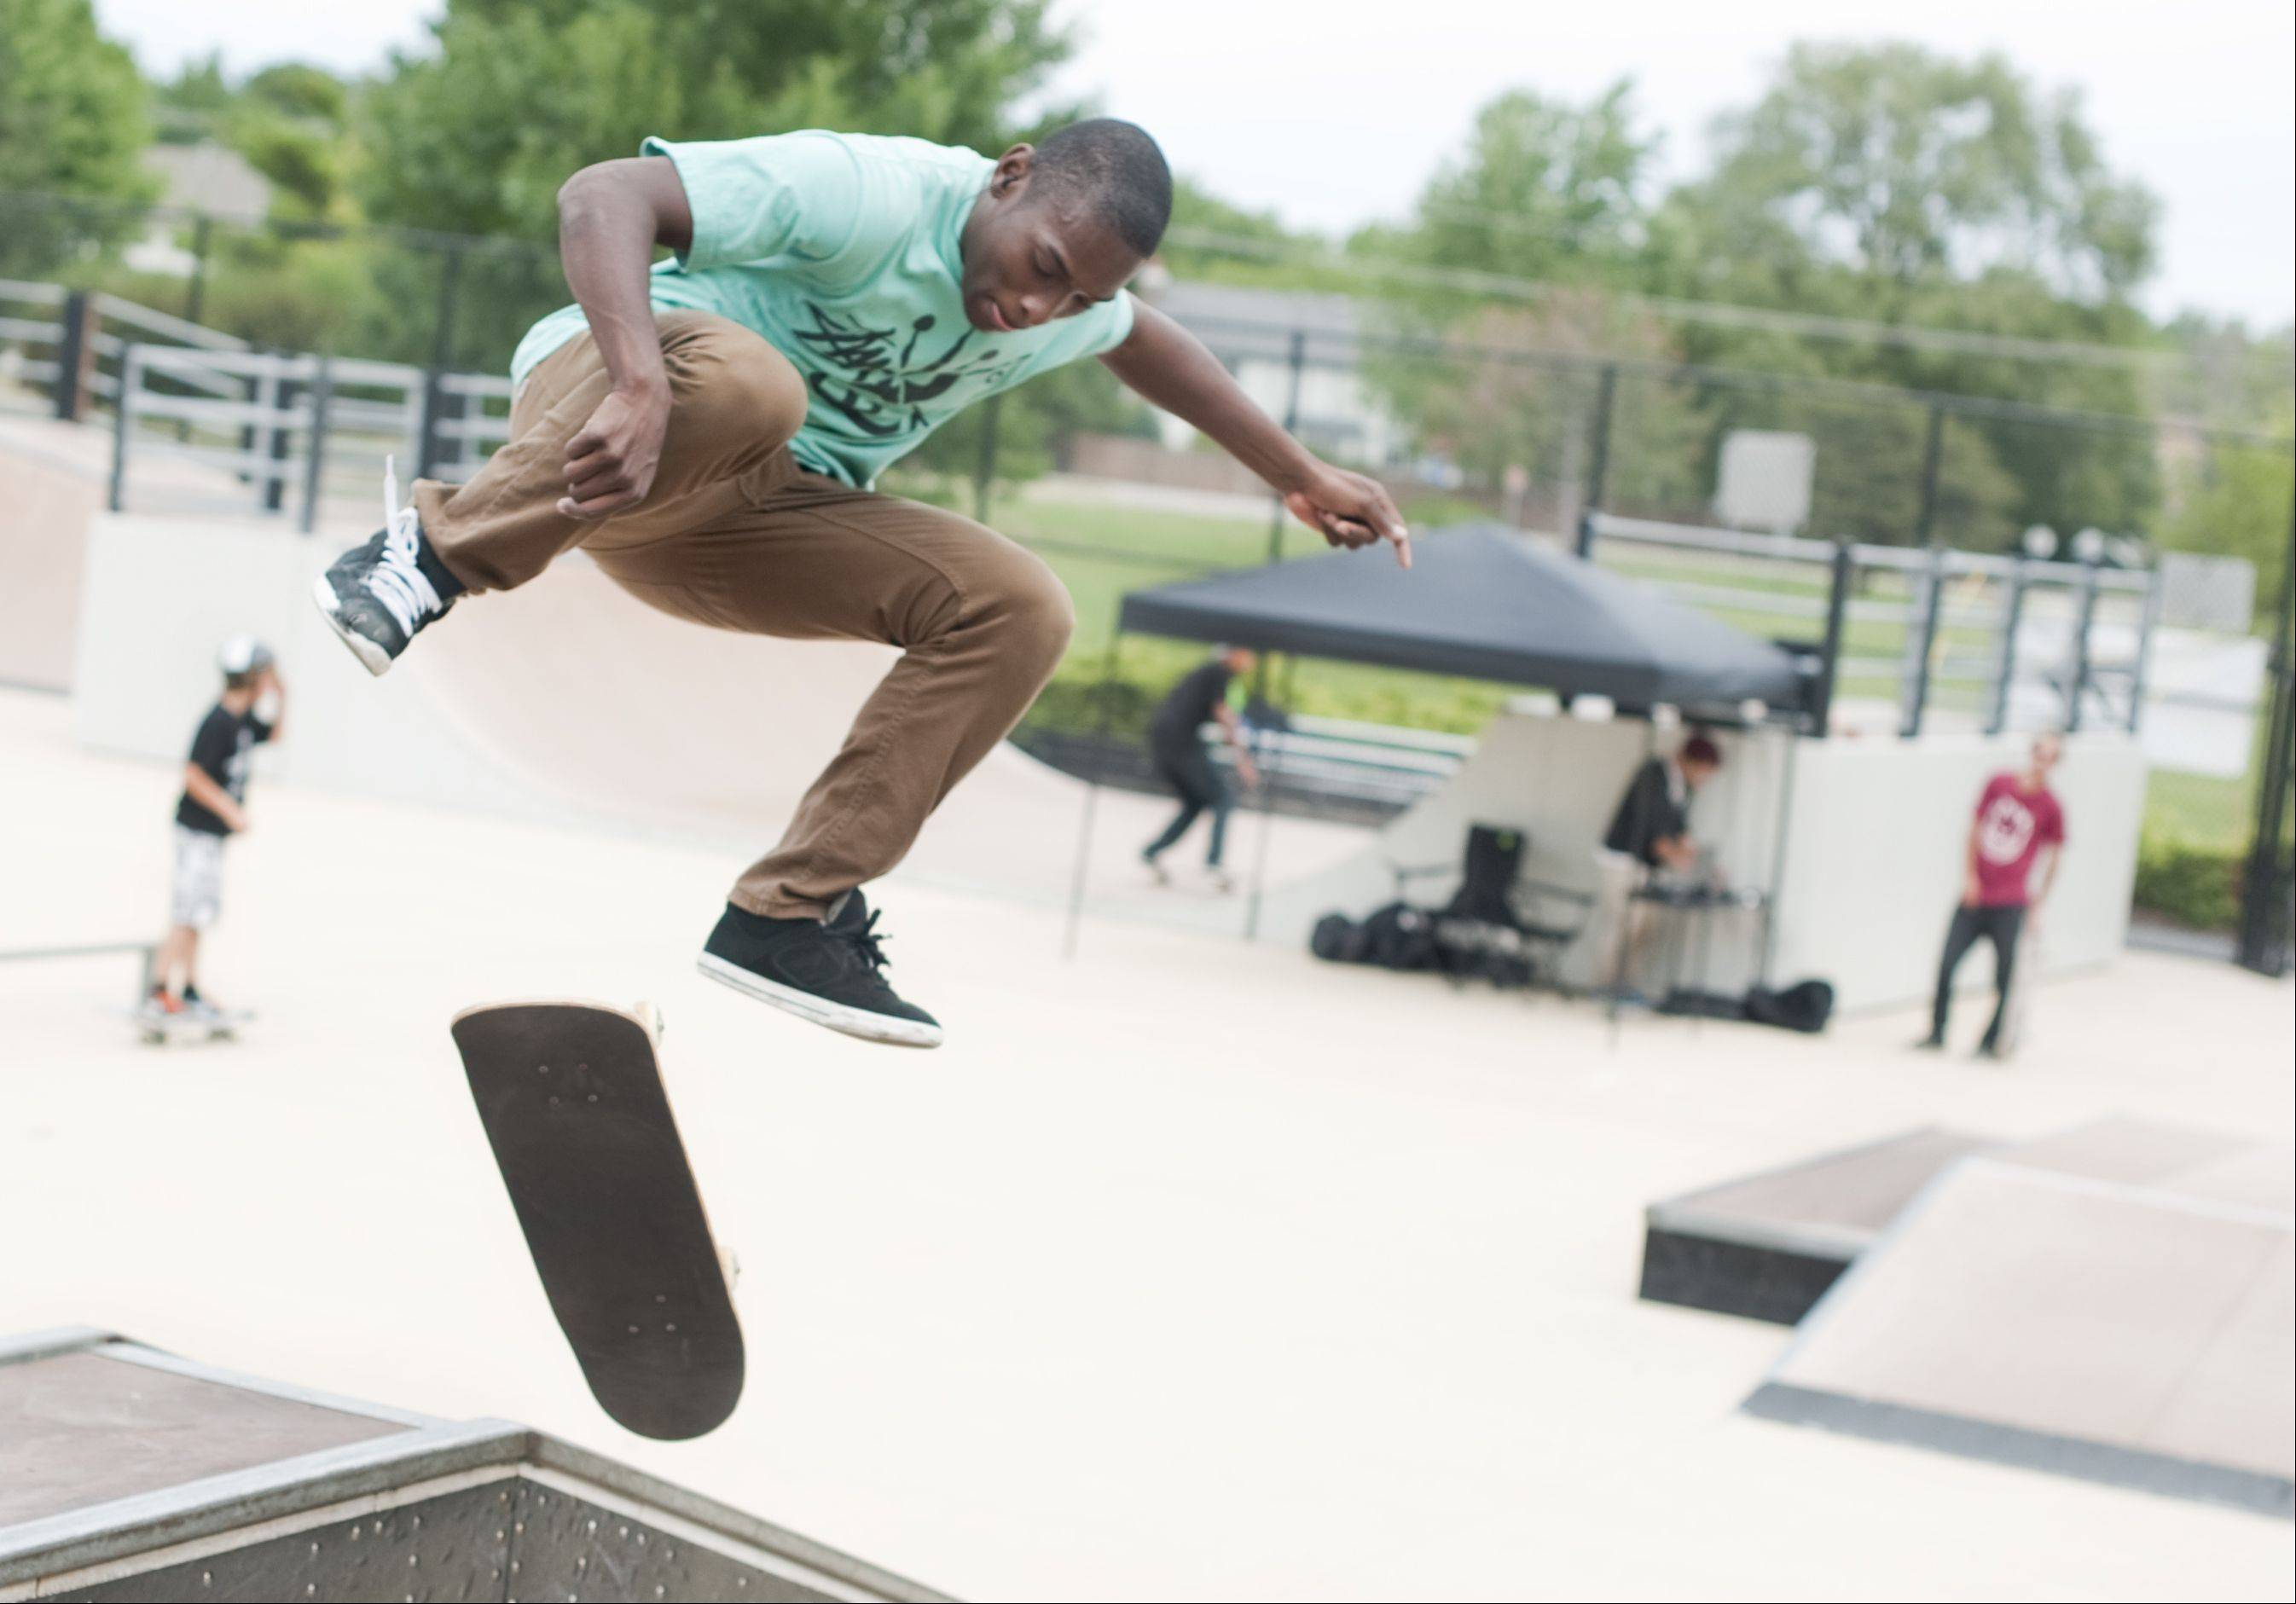 Marcell Purham of Wheaton attempts a board flip during the skateboard contest hosted Sunday by the Geneva Park District at the South Street skate park in Geneva. Purham placed first in the advanced skill level competition as well as best trick competition.